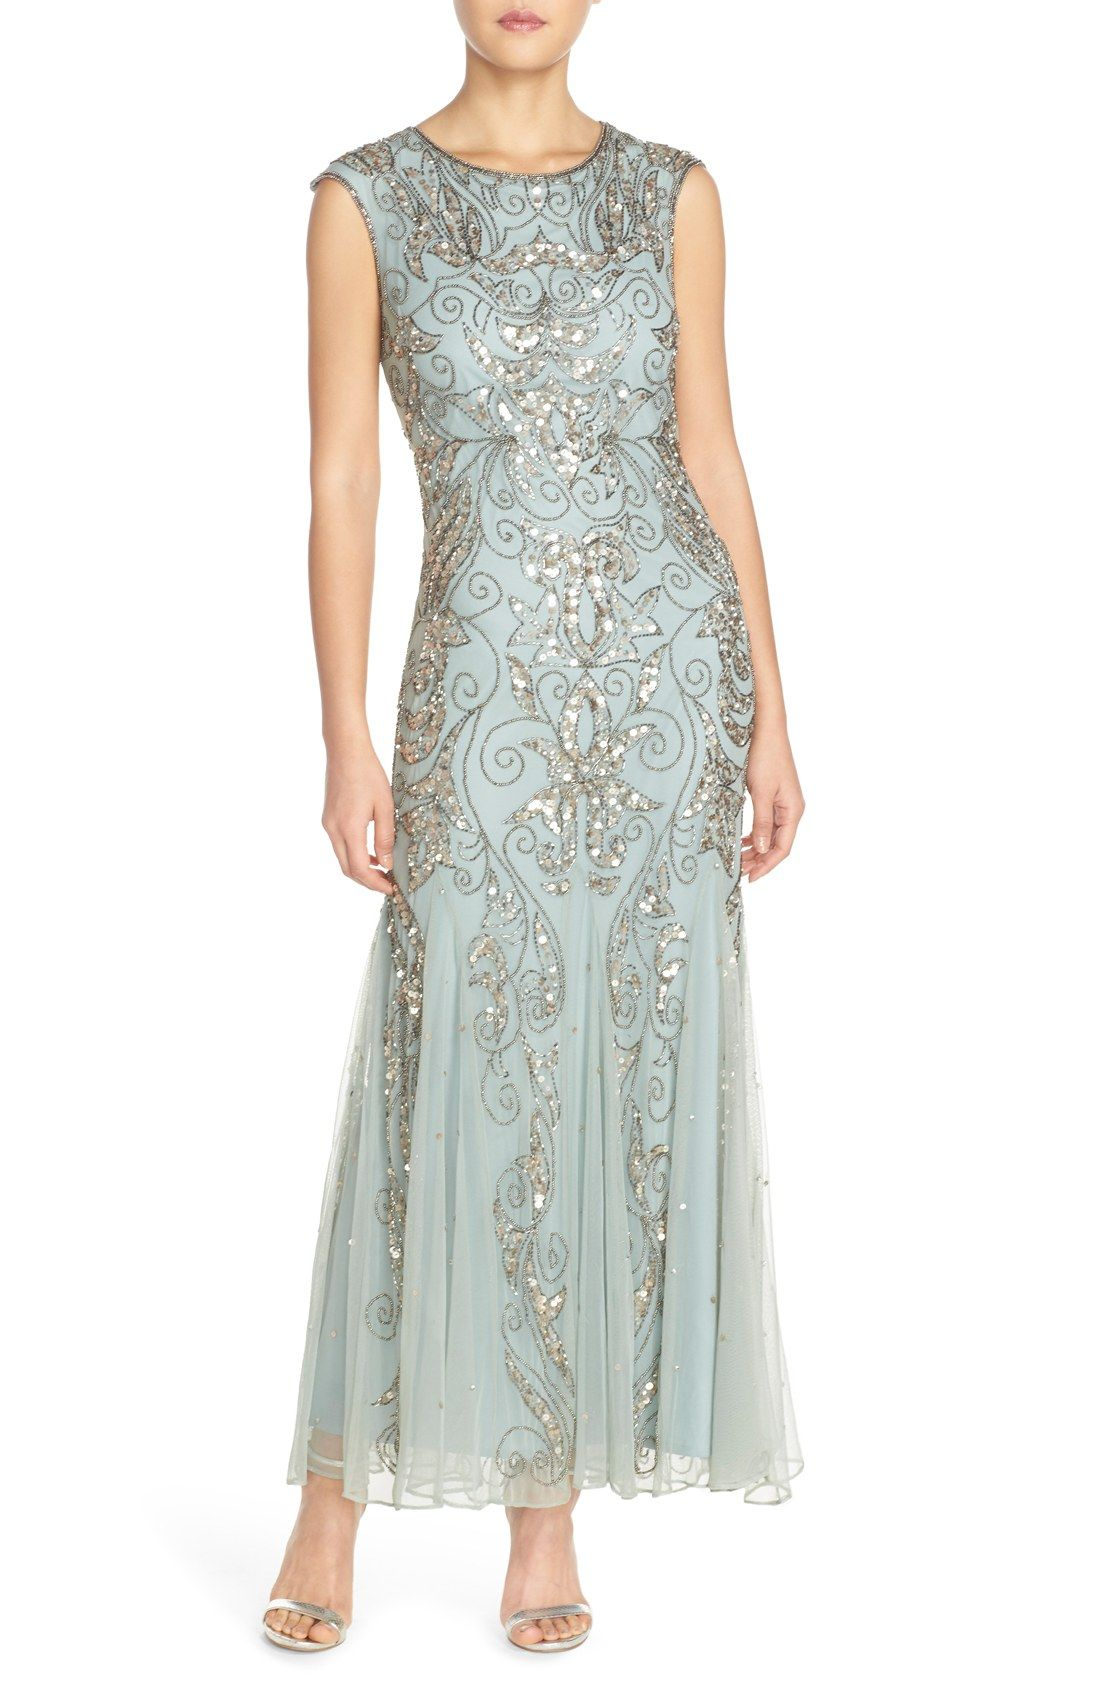 c9dd127763b Hand-selected mother of the bride or groom dresses for mothers to wear to  weddings.